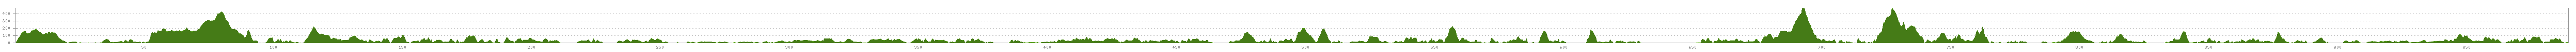 Elevation profile Cycle Route Coastroute Bergen-Trondheim